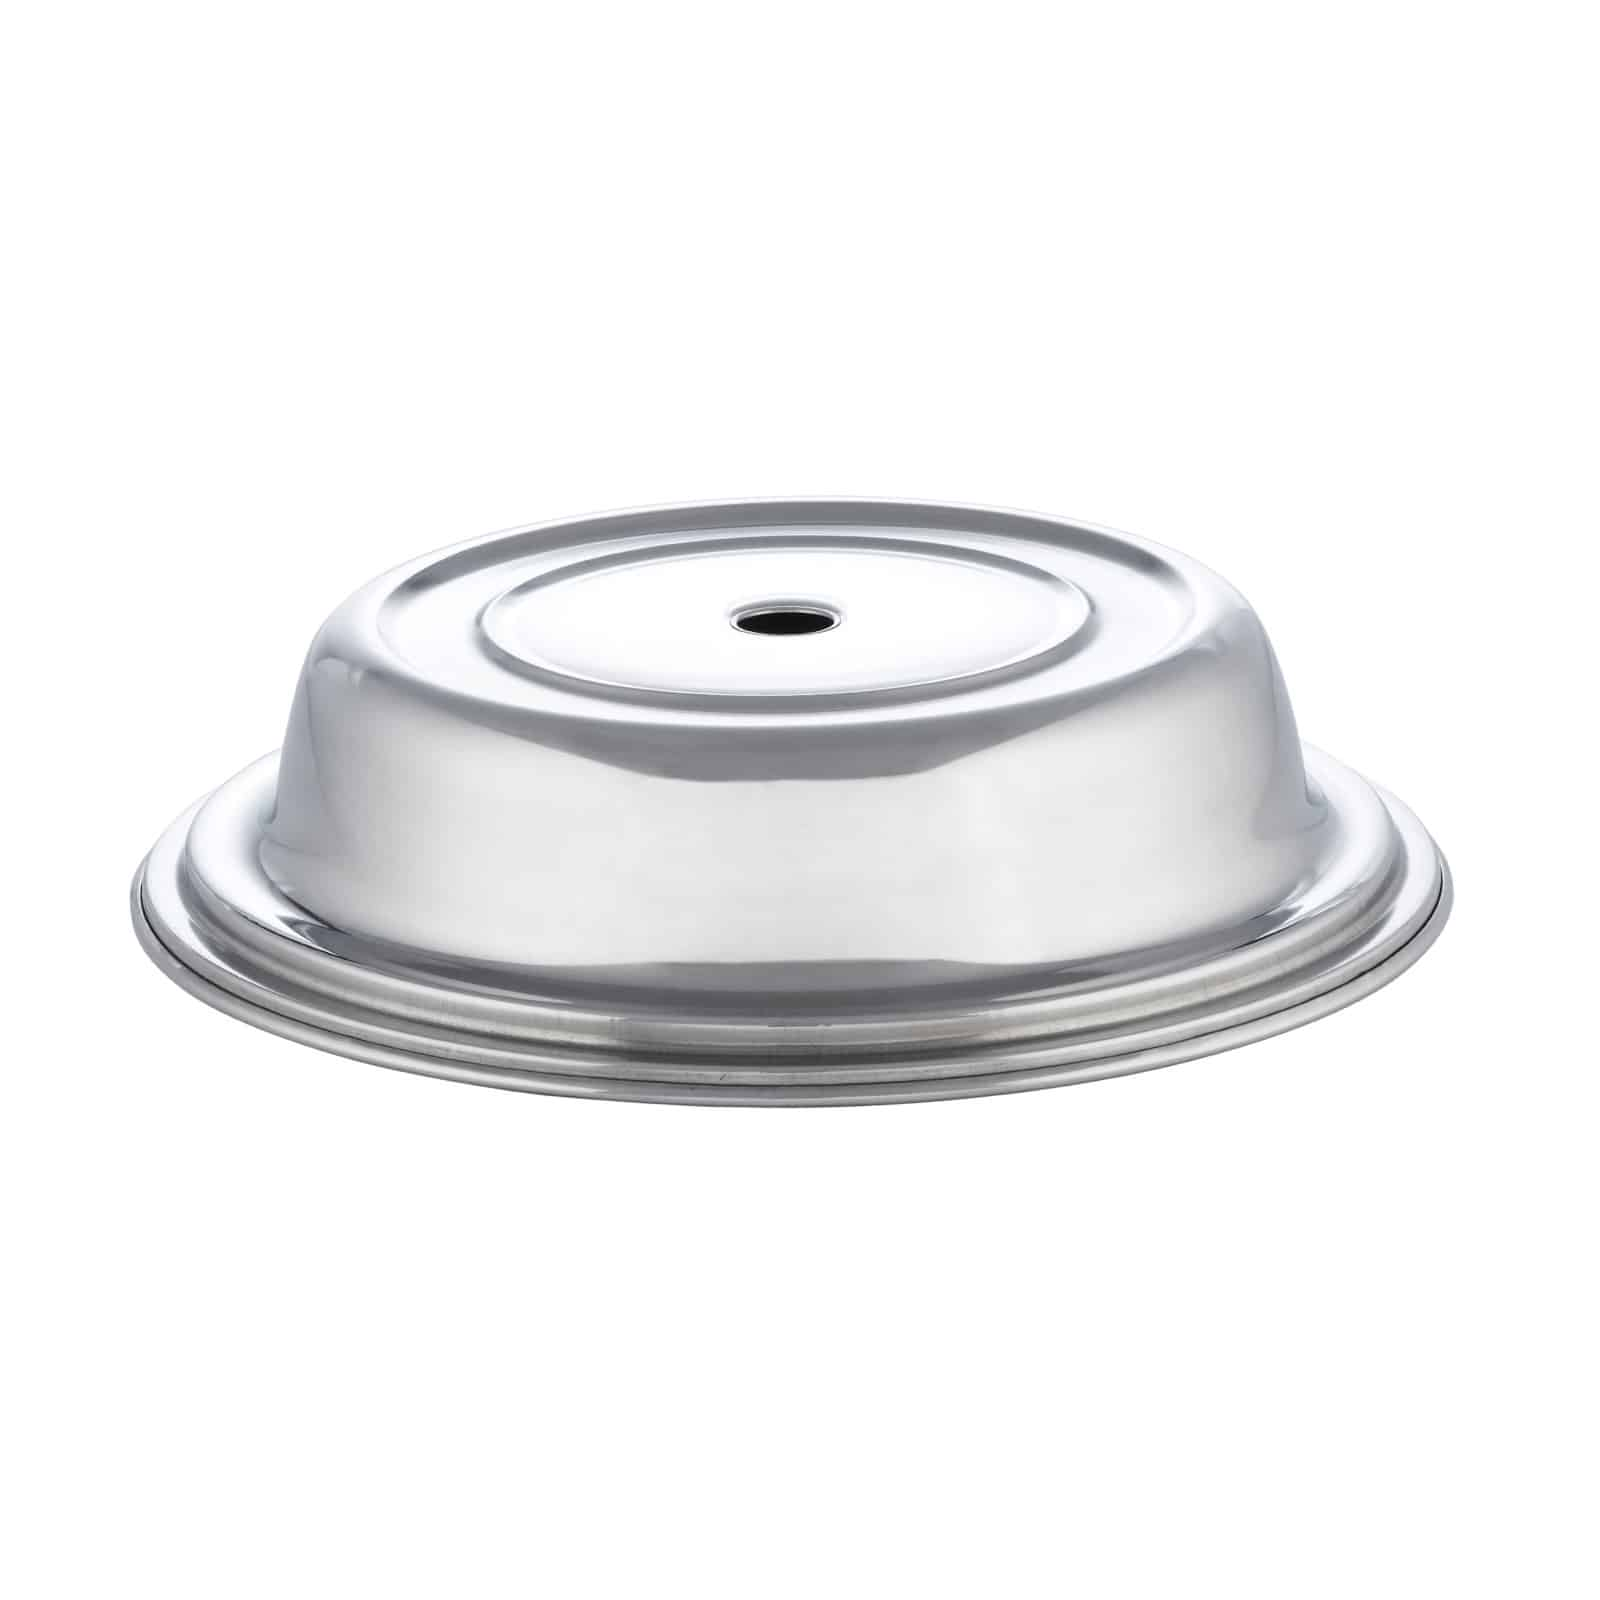 plate covers round custom fitted stainless steel plate covers